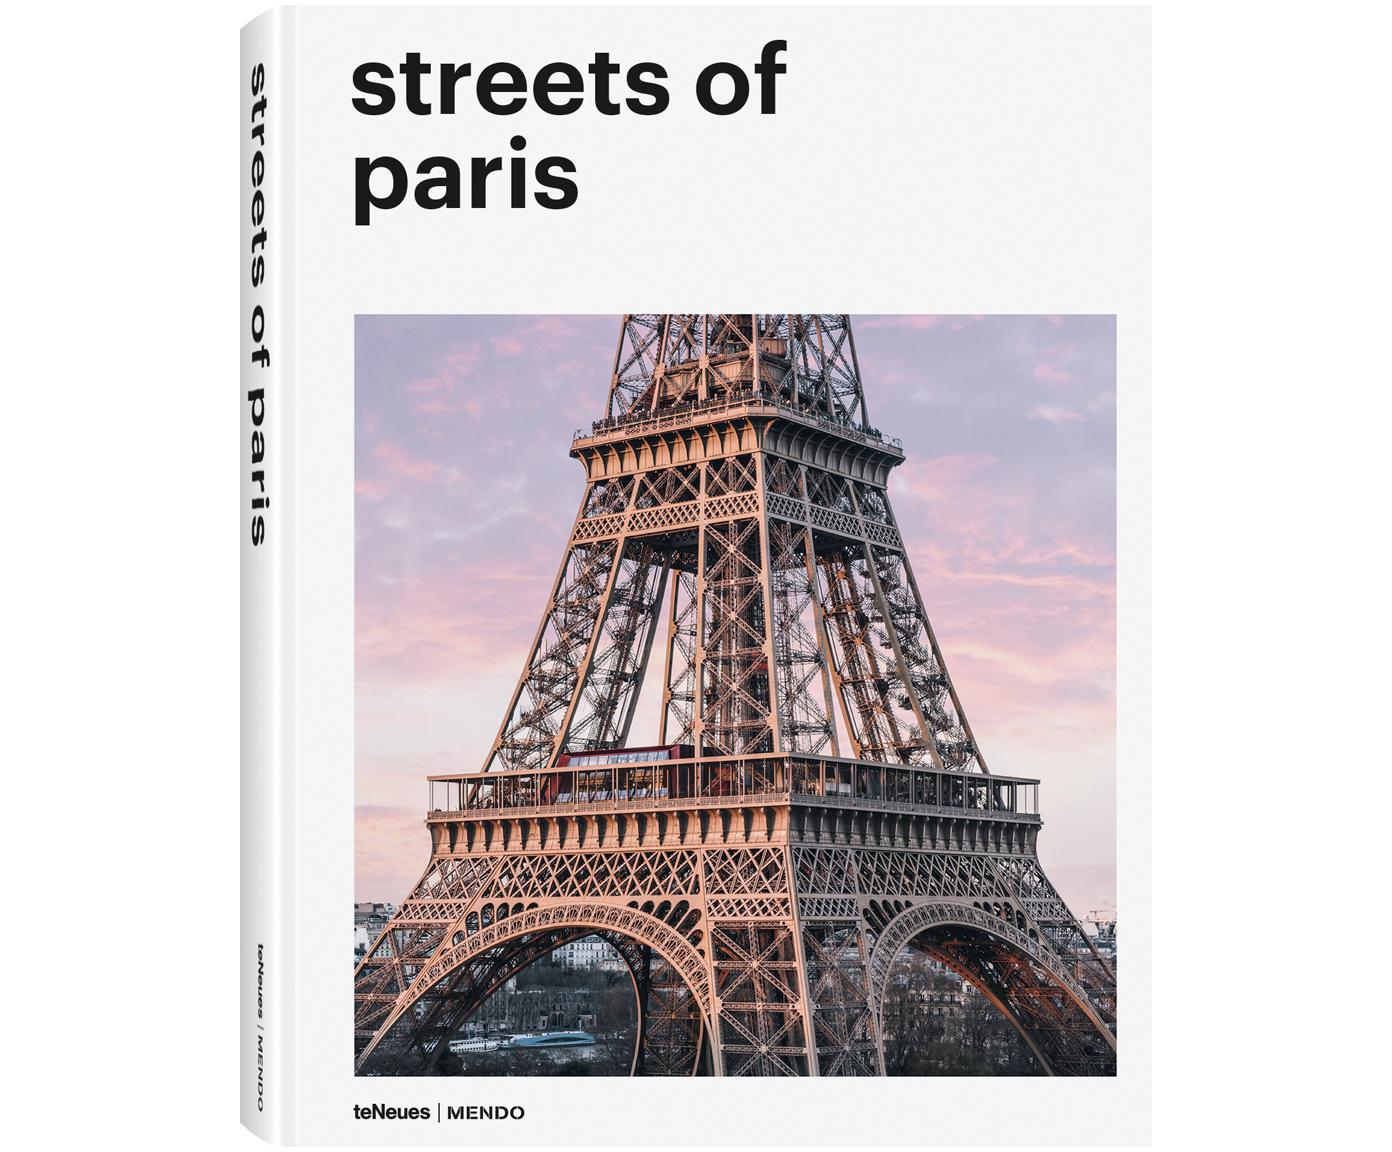 Libro illustrato Streets Of Paris, Carta cornice rigida, Multicolore, Lung. 29 x Larg. 22 cm